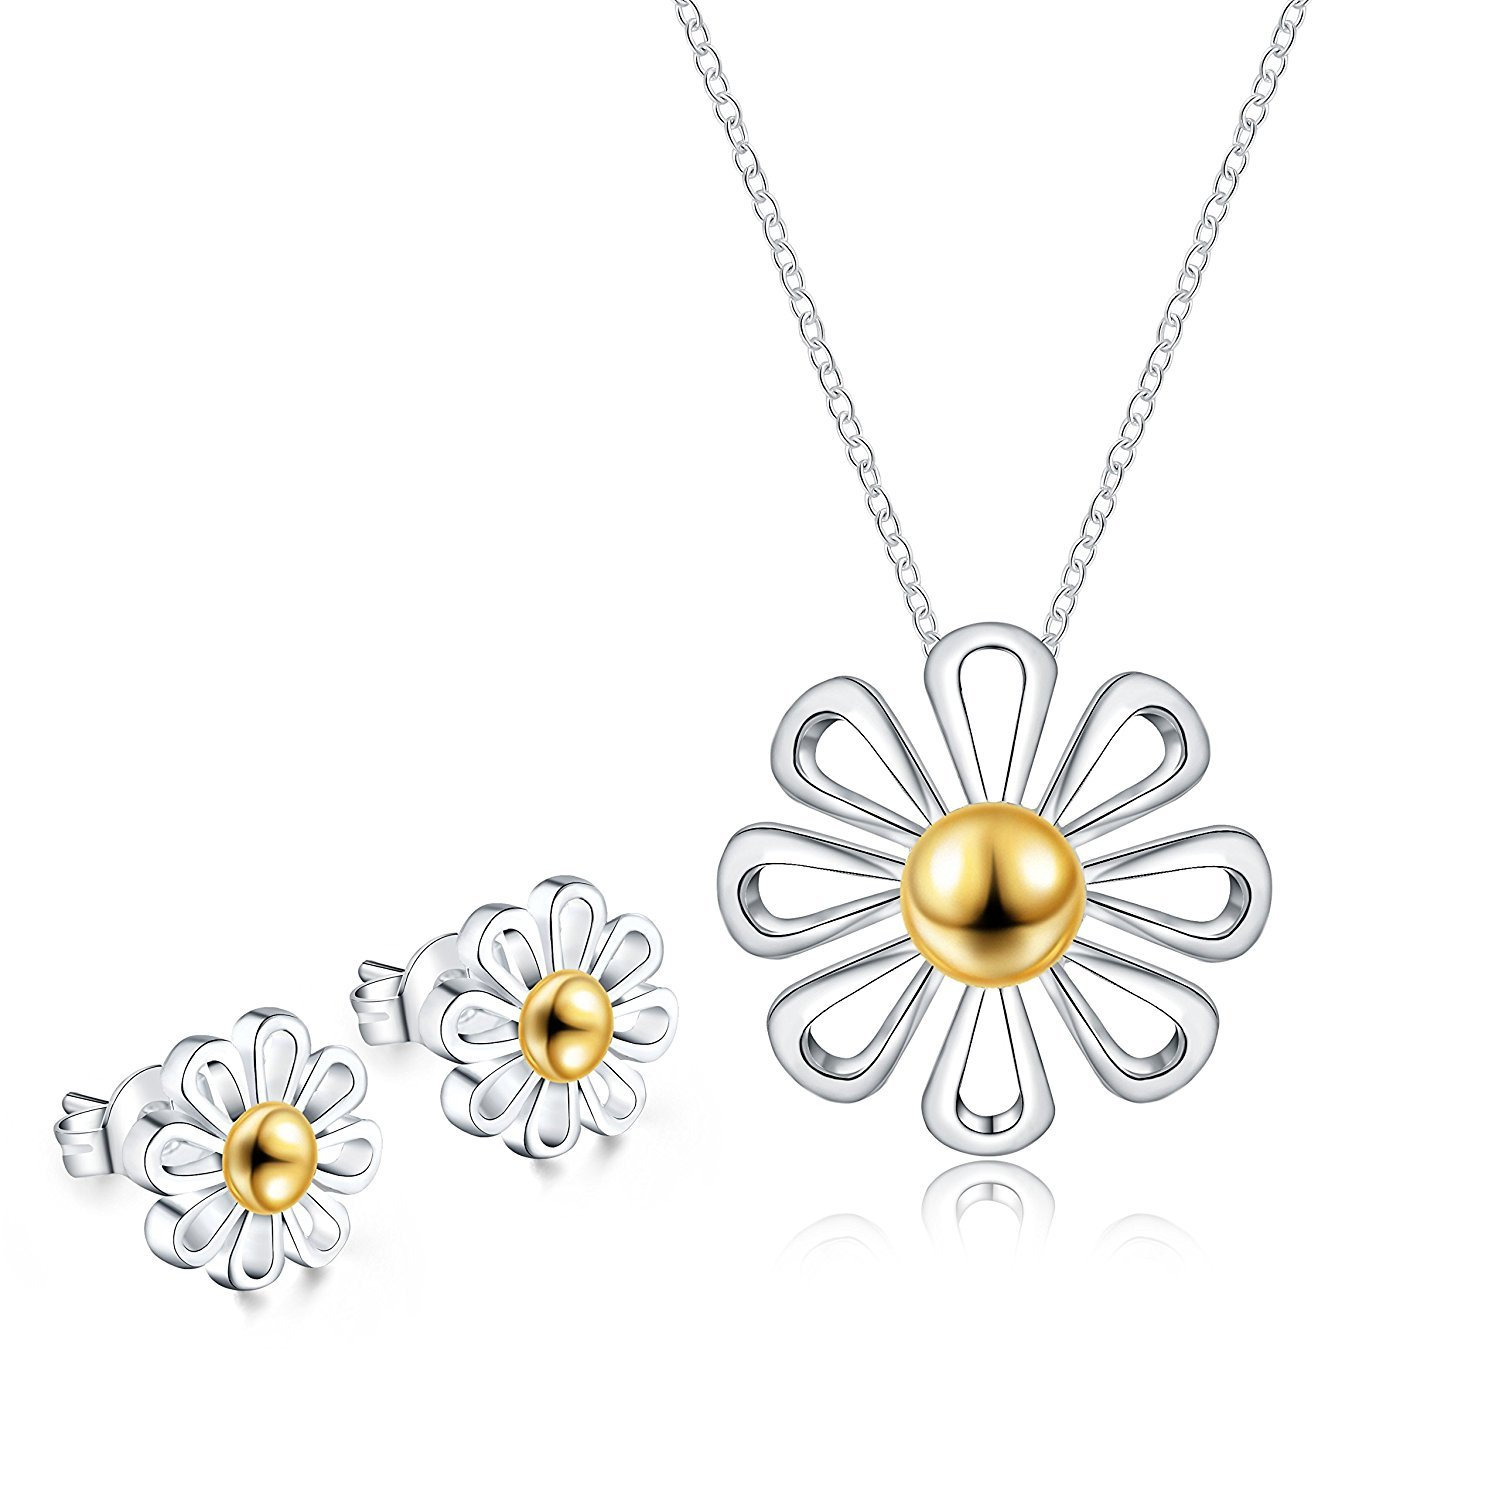 Jewelry Set – Daisy Flower Necklace Pendant Stud Earrings for Women Mom Teen Girl - Fashion Prime Gift 18K Gold Plated